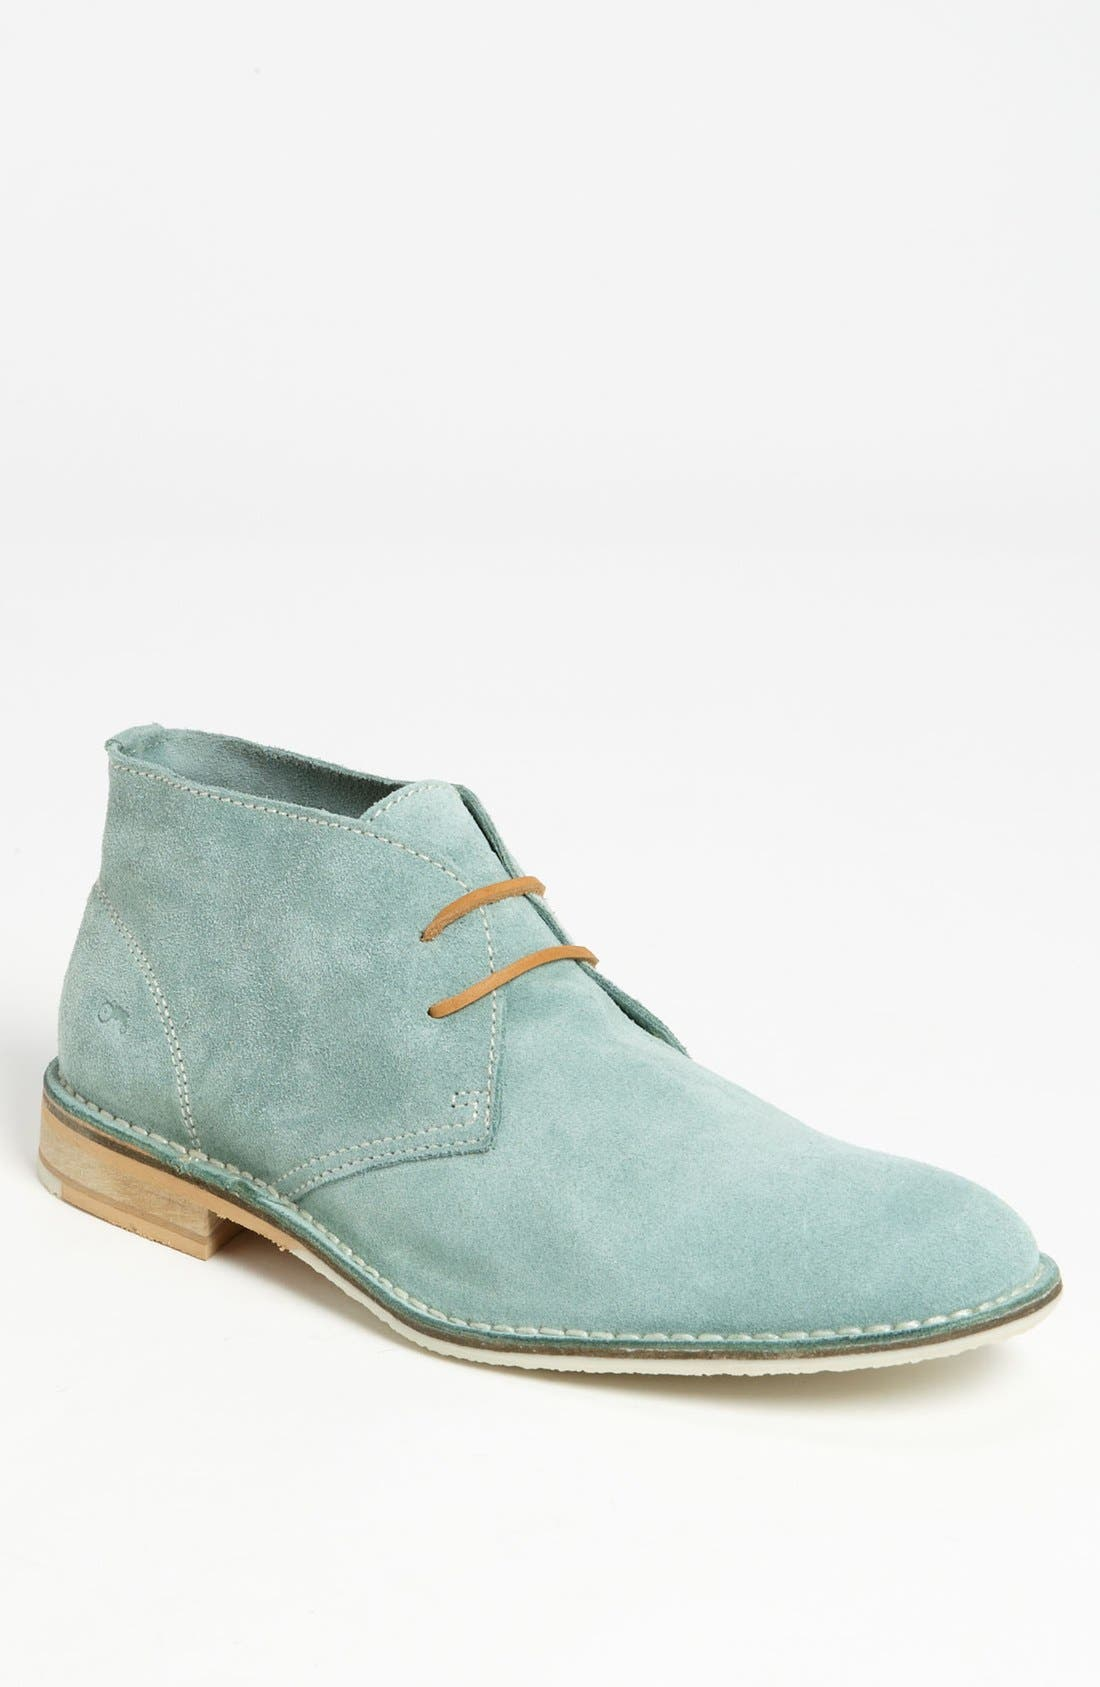 Main Image - Moods of Norway 'Majorstuen' Chukka Boot